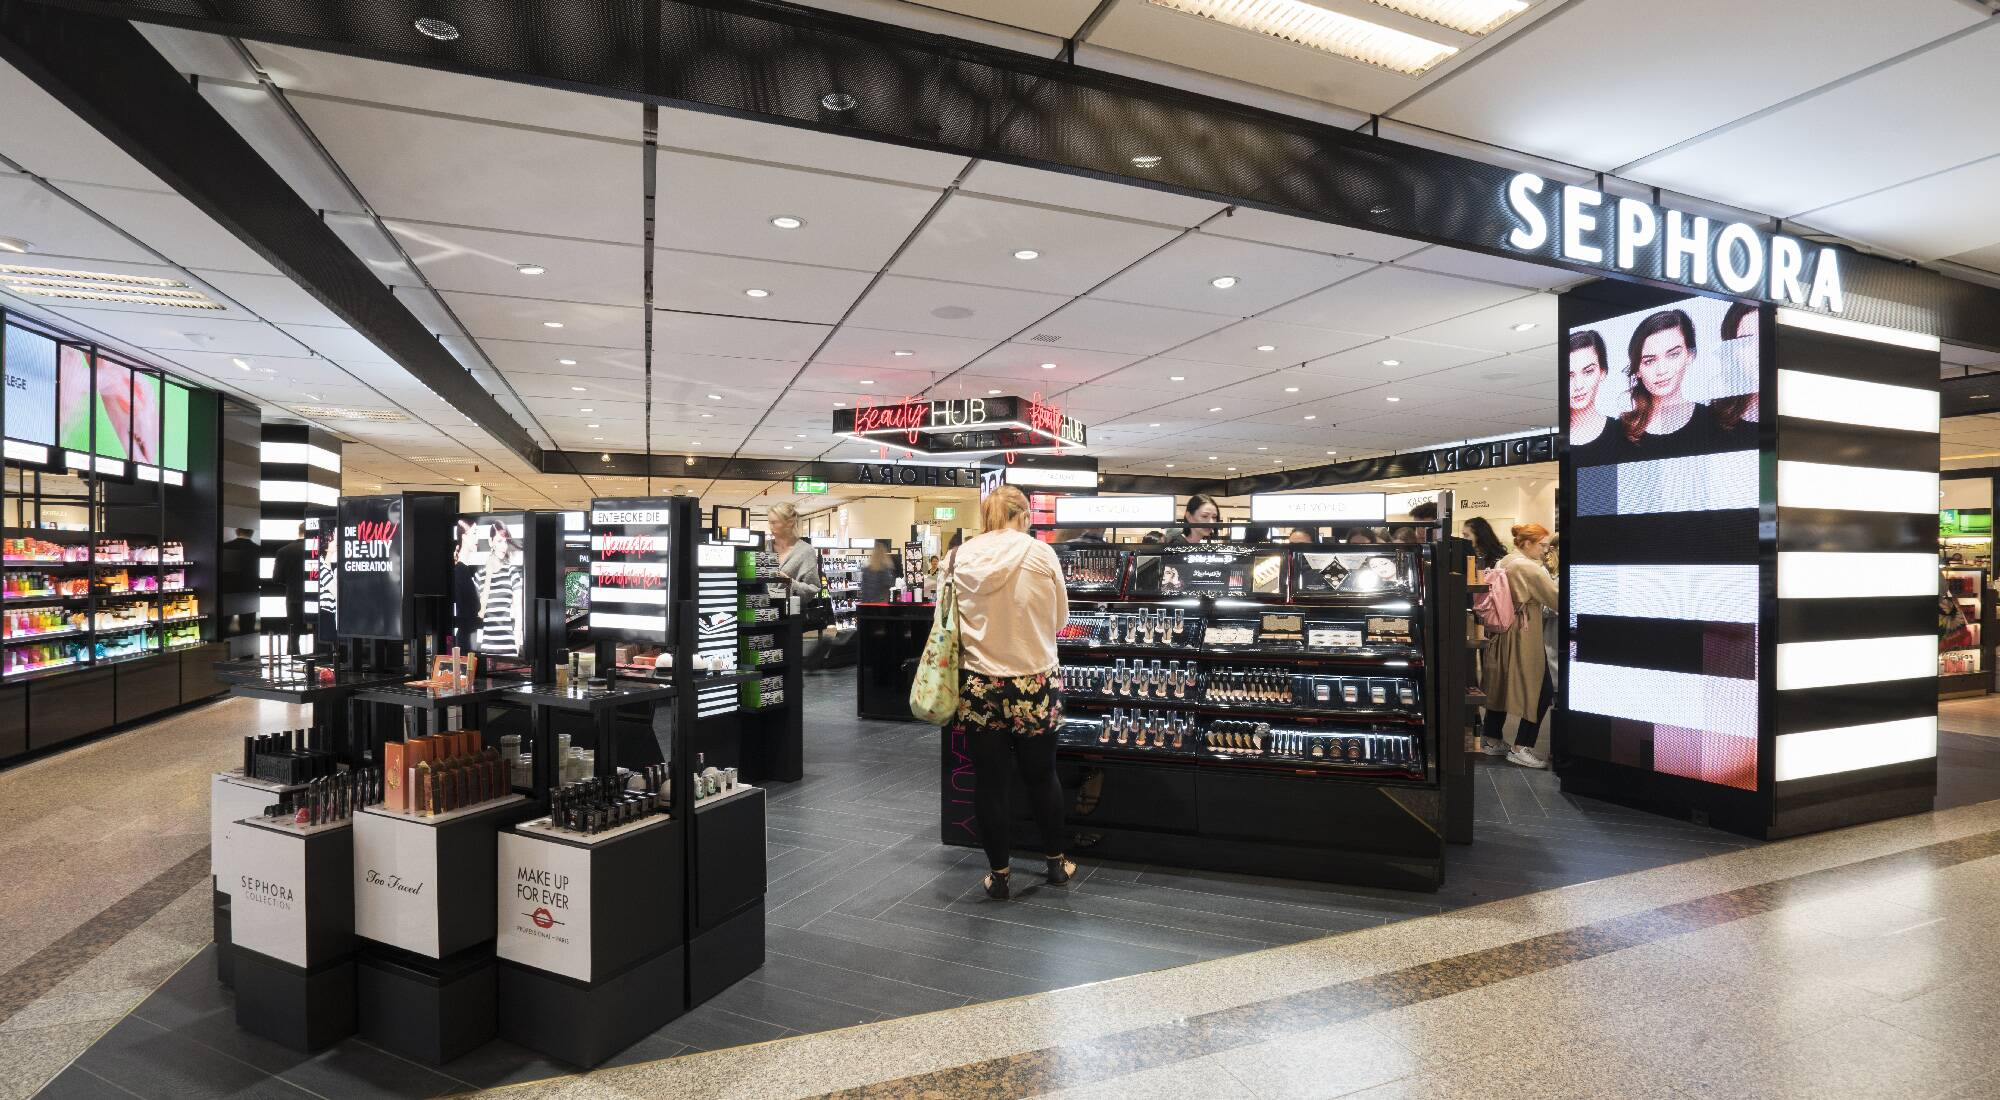 Sephora arrives in Germany with first store in Munich - LVMH